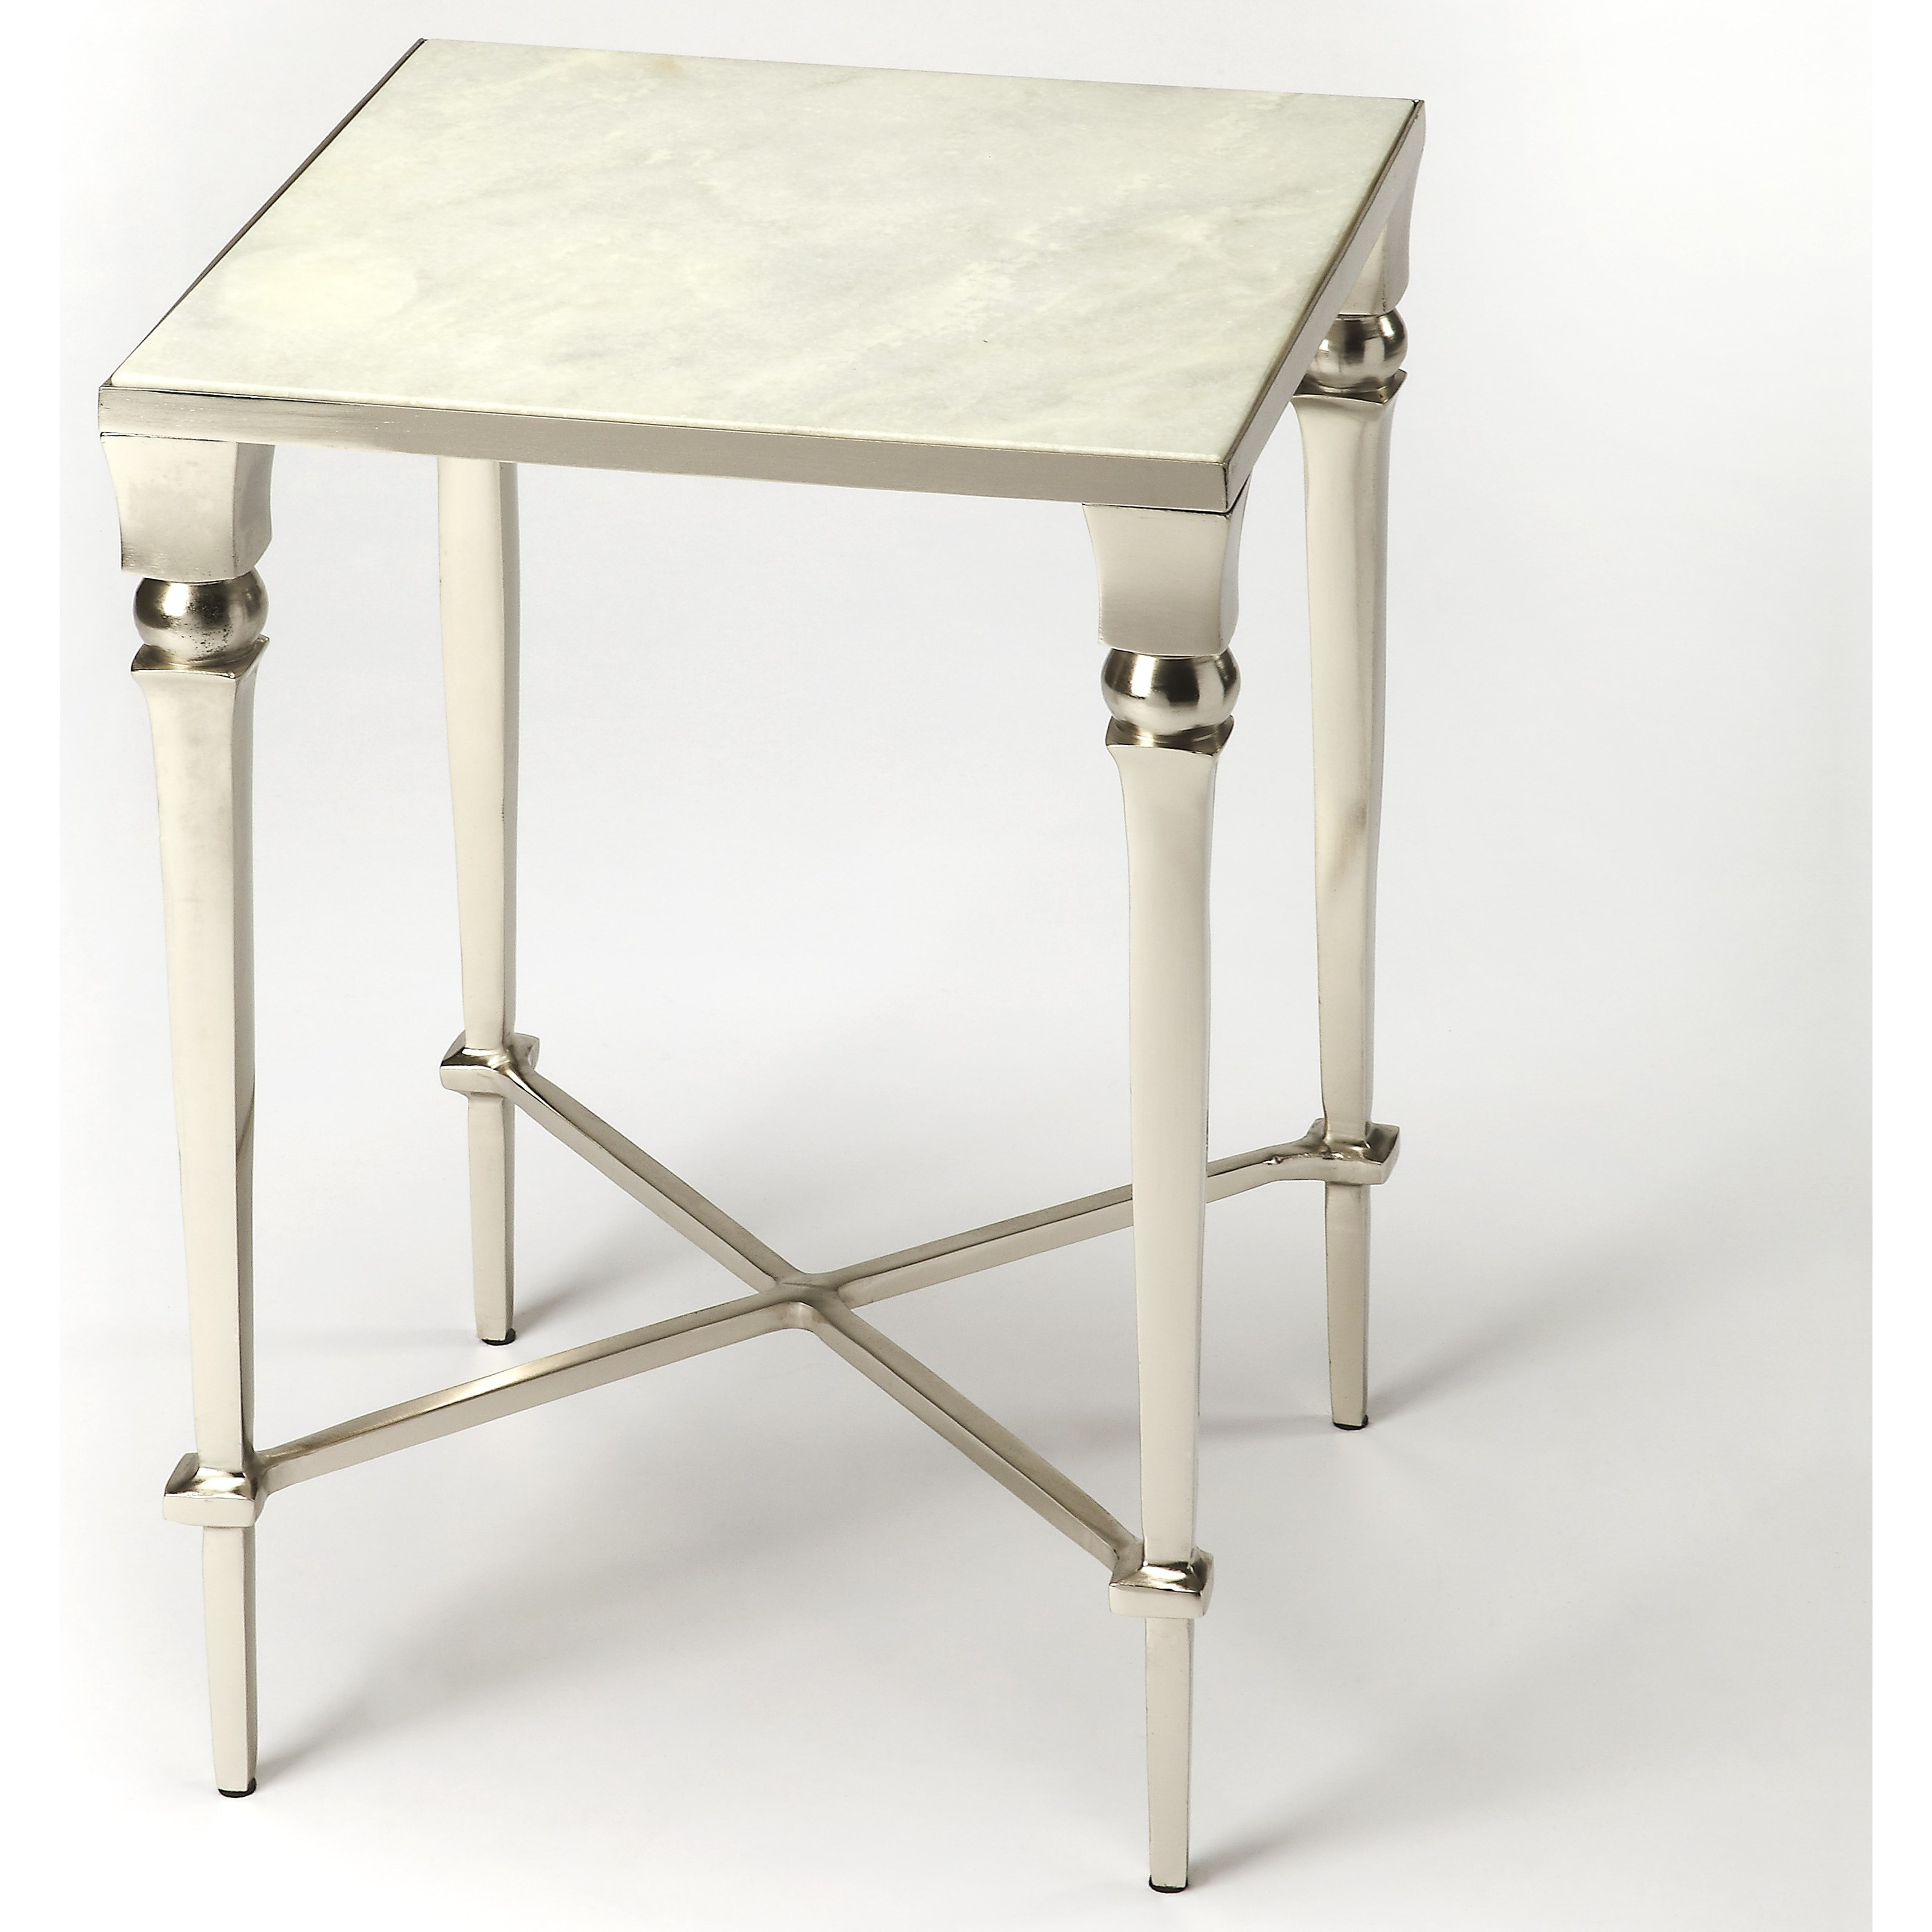 Butler Specialty Company Modern Expressions End Table - Item Number: 3677260